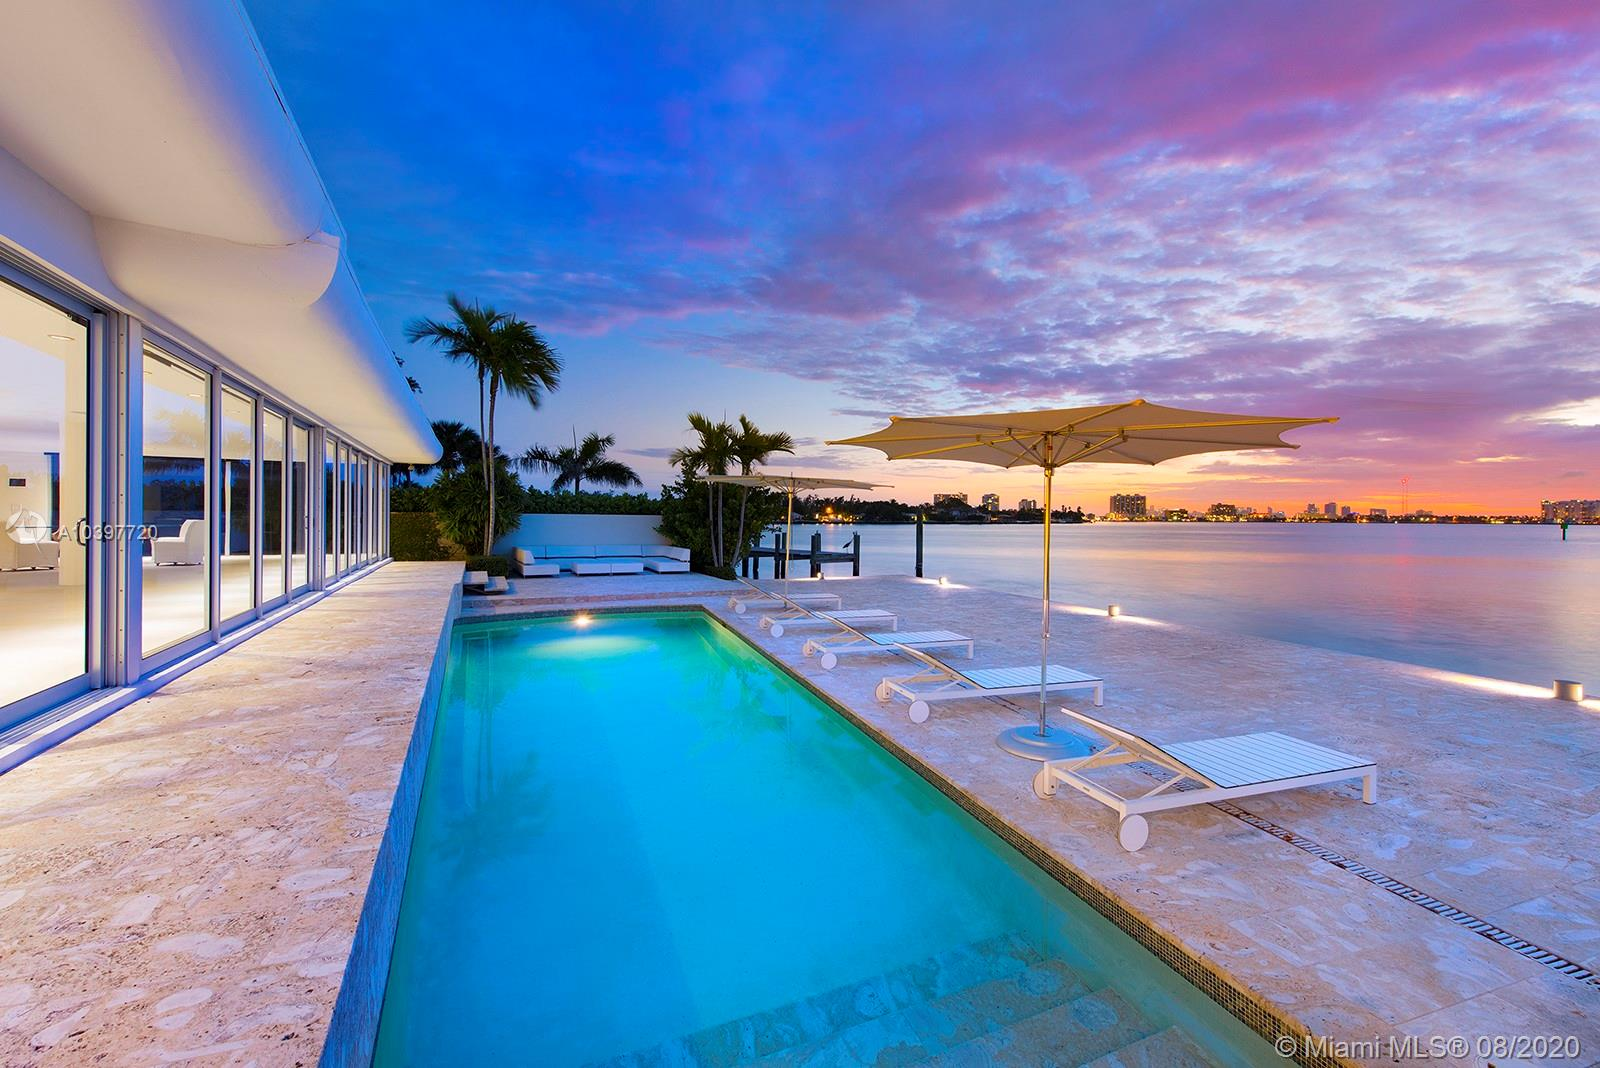 Best views on the island! Located at the tip of guard gated Biscayne Point in Miami Beach, you'll marvel at the panoramic open bay and downtown views. Watch sunsets from the expansive sliding glass doors of this stunning MiMo waterfront home. A large 12,000 sq. ft. lot with 100 feet of waterfront and over 1,100 sq. ft. of tiled dock offers a backyard oasis with pool, spa and cabana bath. Luxurious open floor plan has book-matched Calcatta marble and limestone. Professional kitchen boasts Boffi cabinets, Nero Portoro marble and appliances from Miele, Subzero, and Gaggenau. Master suite includes custom walk-in Ornare closet, marble bath and steam shower. The property has Savant home automation, security cams, backup generator, and is surrounded by a gated 6 ft. wall for the utmost privacy.